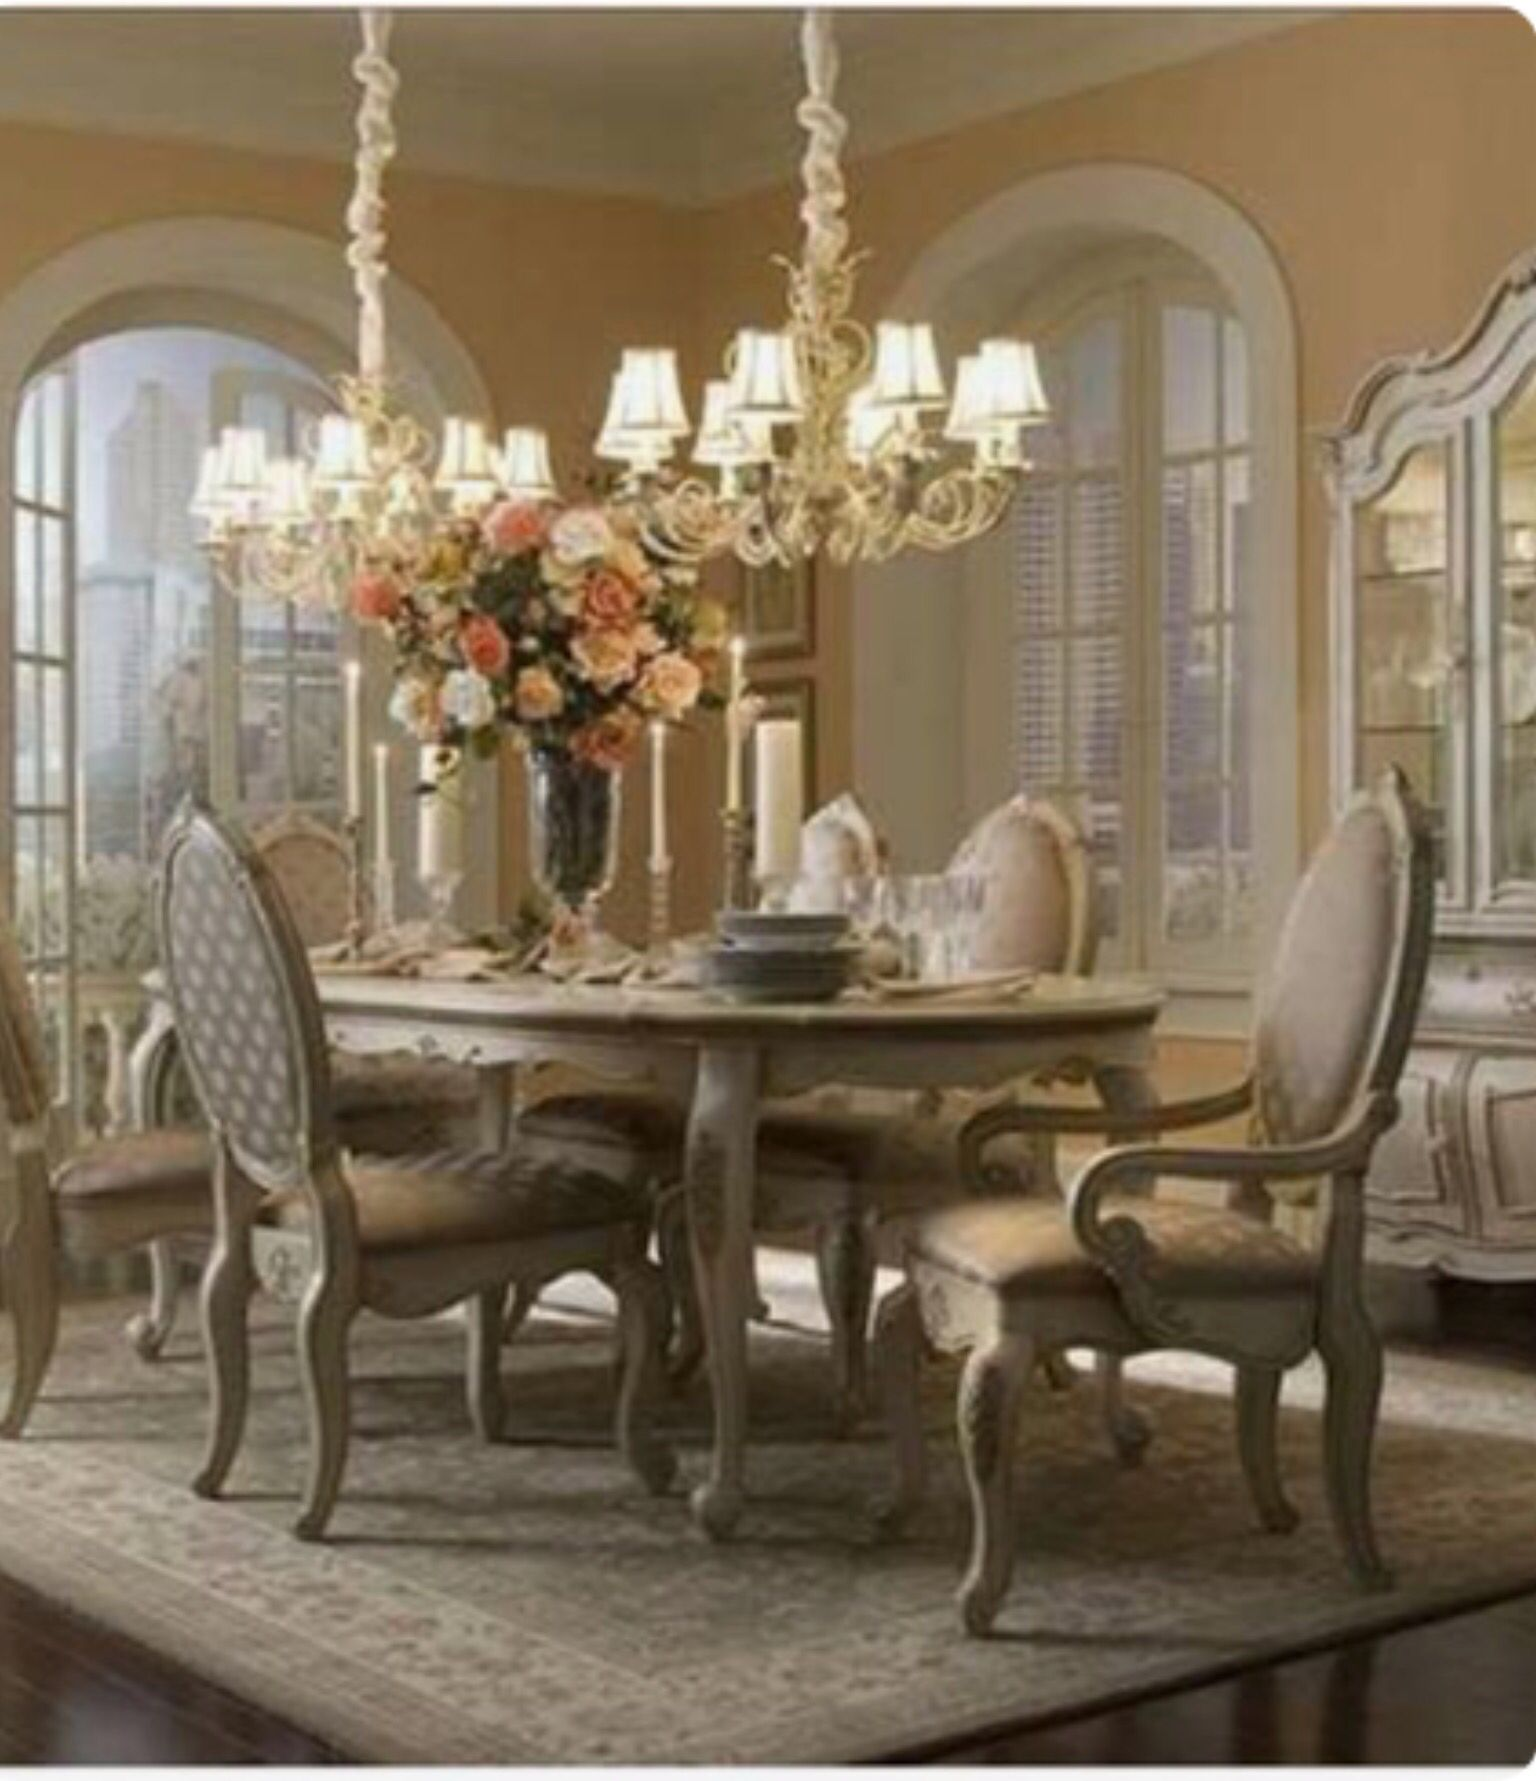 classic french country dining | interior design | pinterest